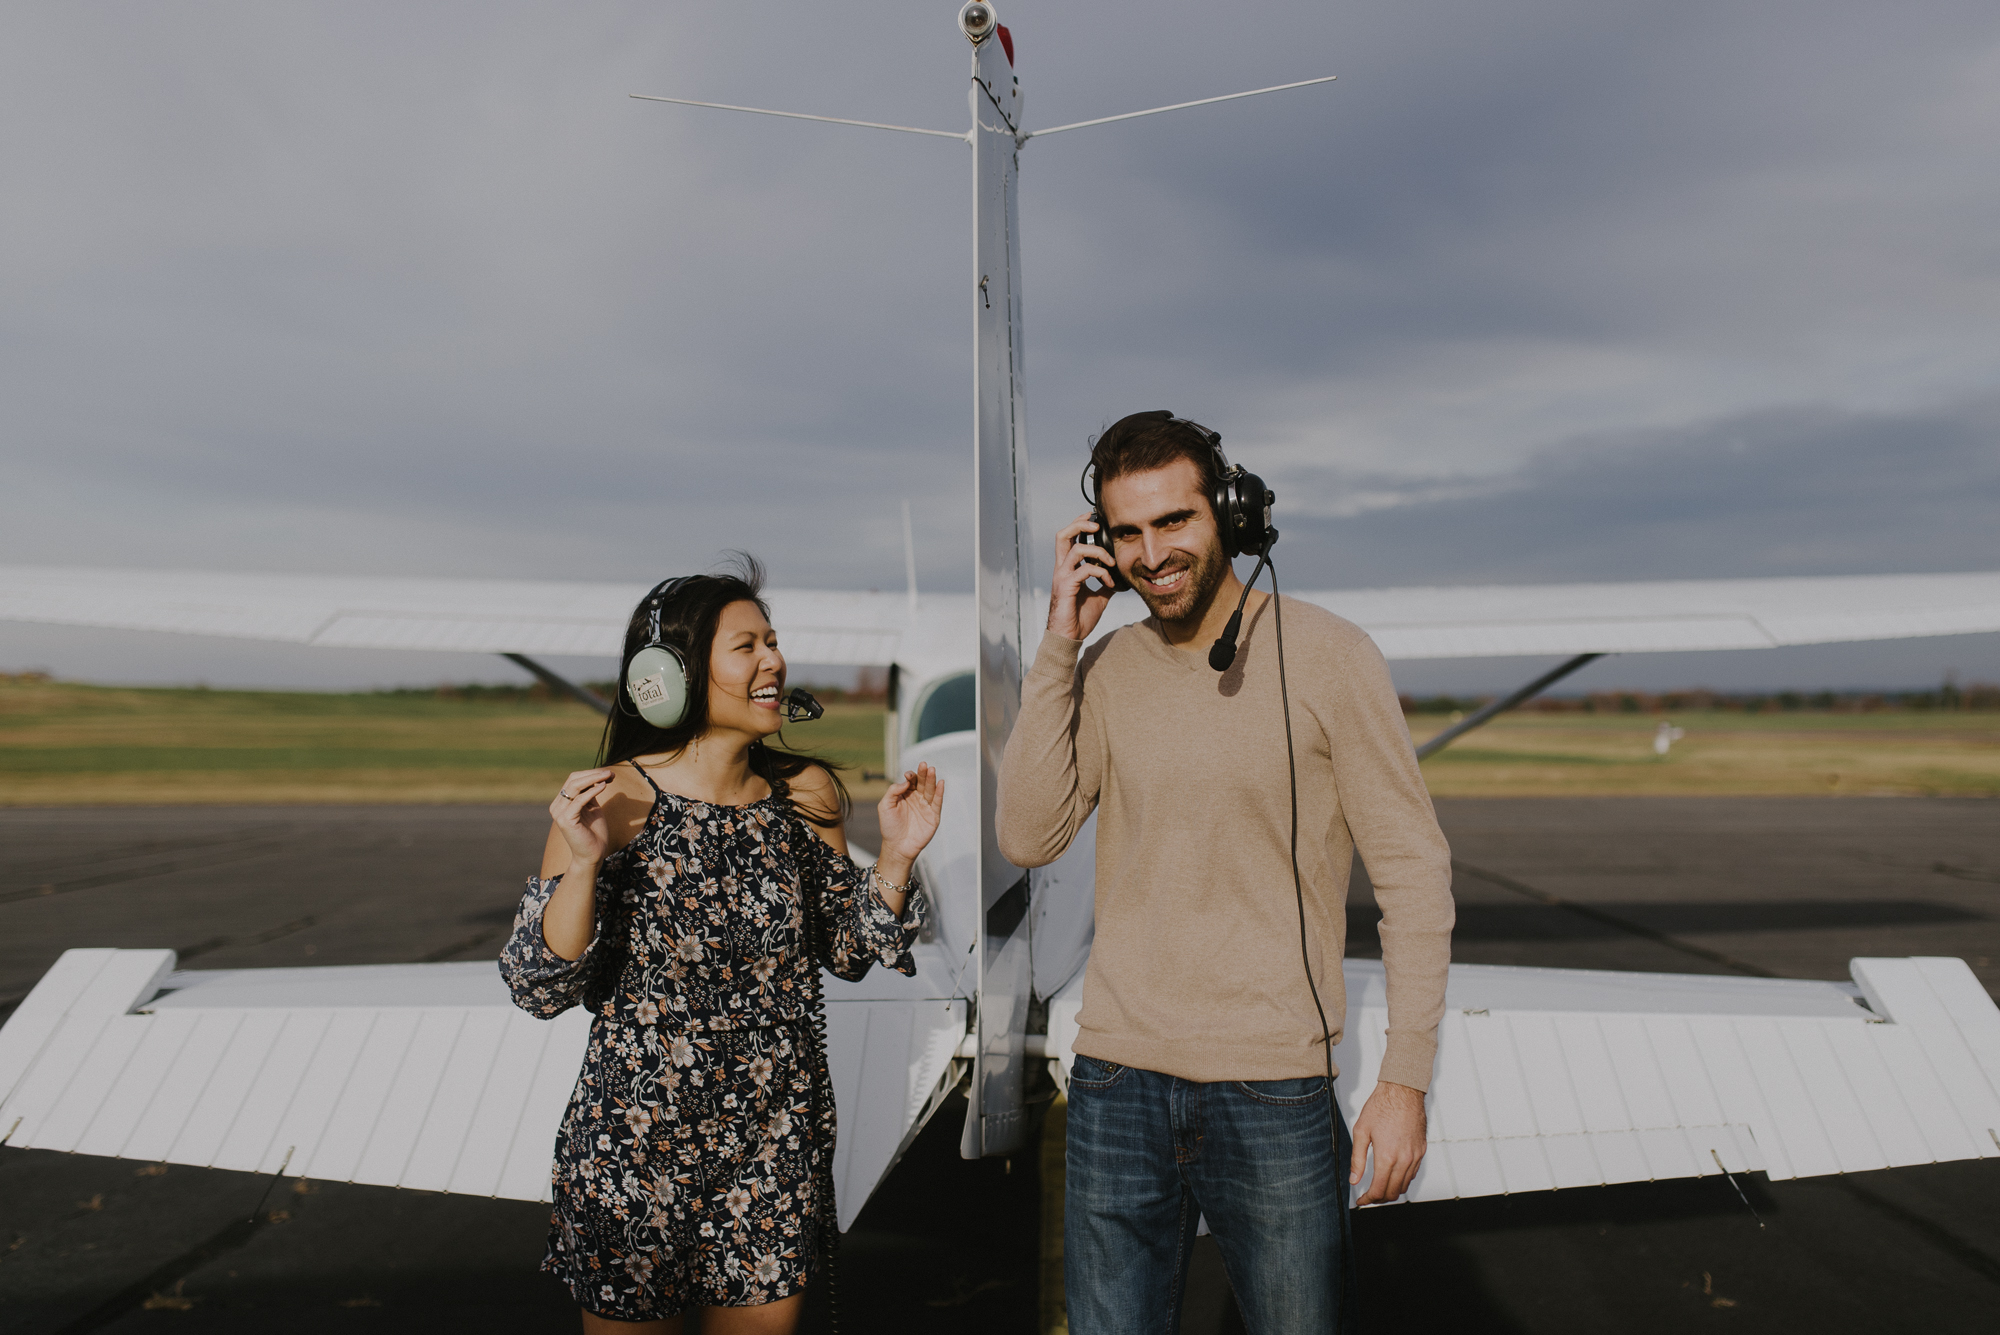 Airplanes and Engagement